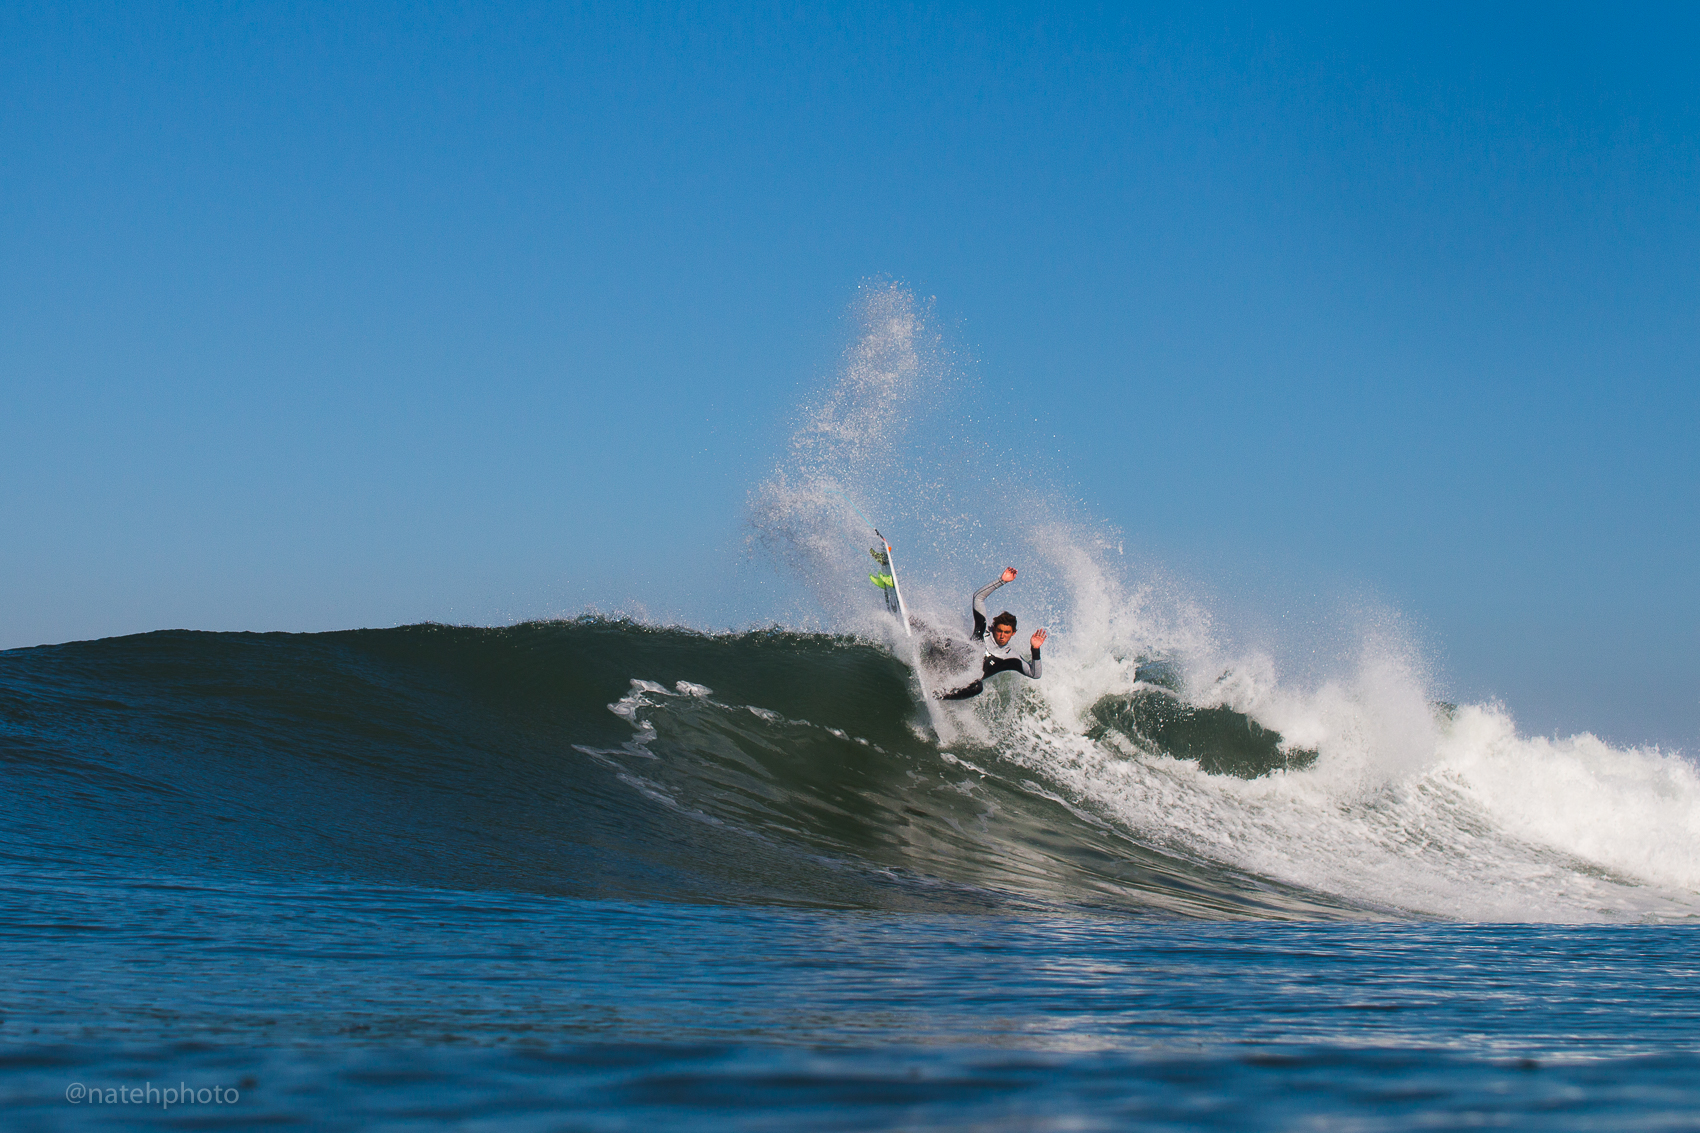 Griffin Colapinto blow tail at Lowers, San Clemente, CA.